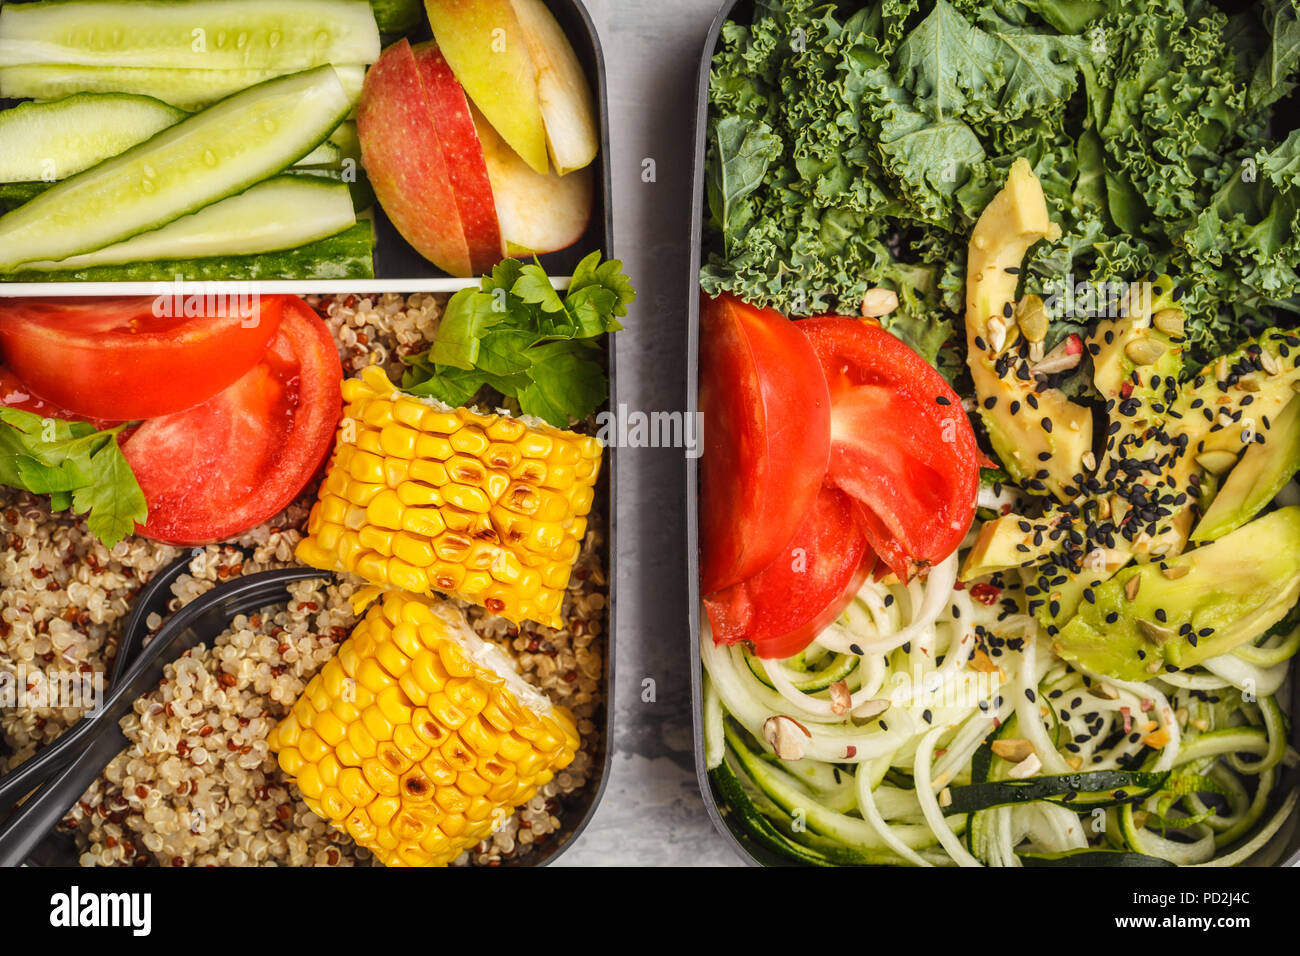 Healthy meal prep containers with quinoa, avocado, corn, zucchini noodles and kale. Takeaway food. White background, top view. - Stock Image